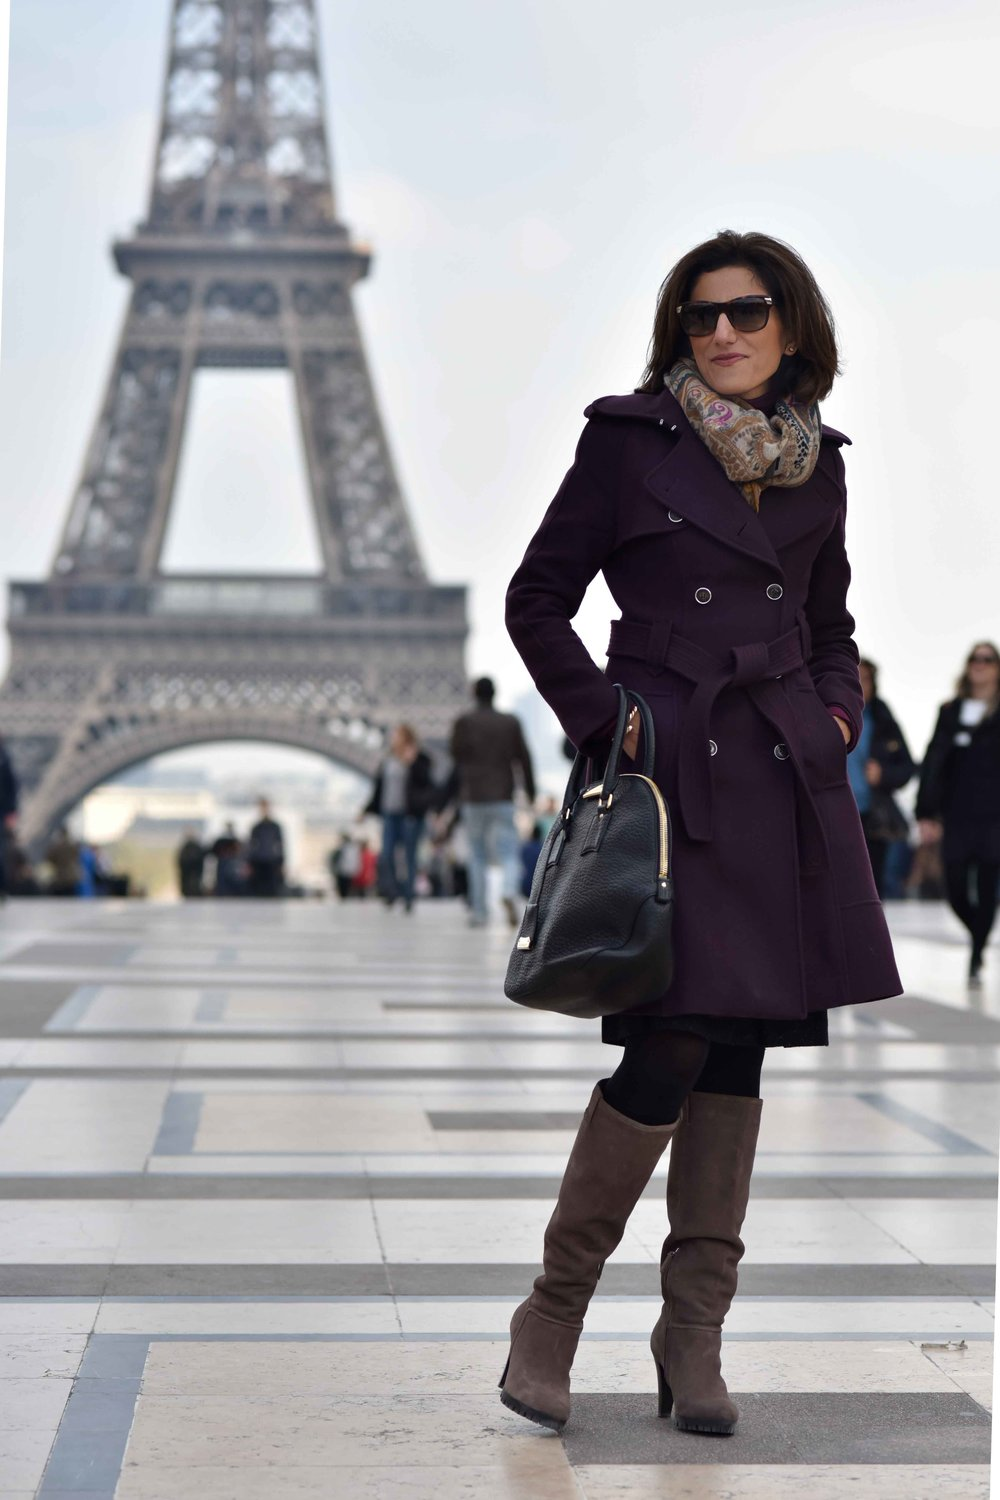 Karen Millen fall winter coat, Karen Millen boots, Burberry bag, Gucci sunglasses, Eiffel Tower, Paris. Image©sourcingstyle.com